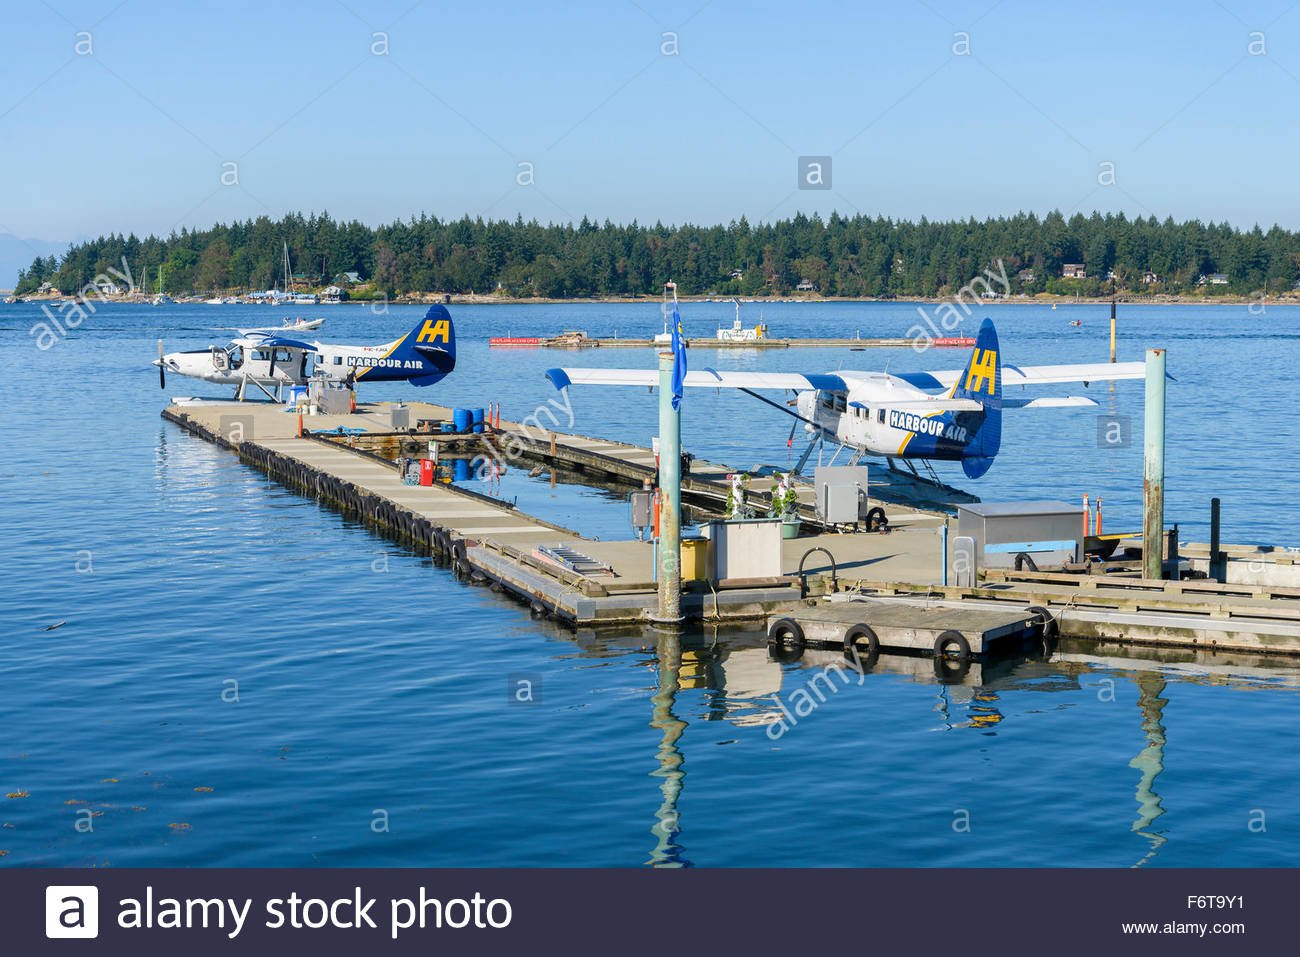 Harbour Air Float Flugzeuge, Nanaimo Terminal, Nanaimo, British Columbia, Kanada Stockbild